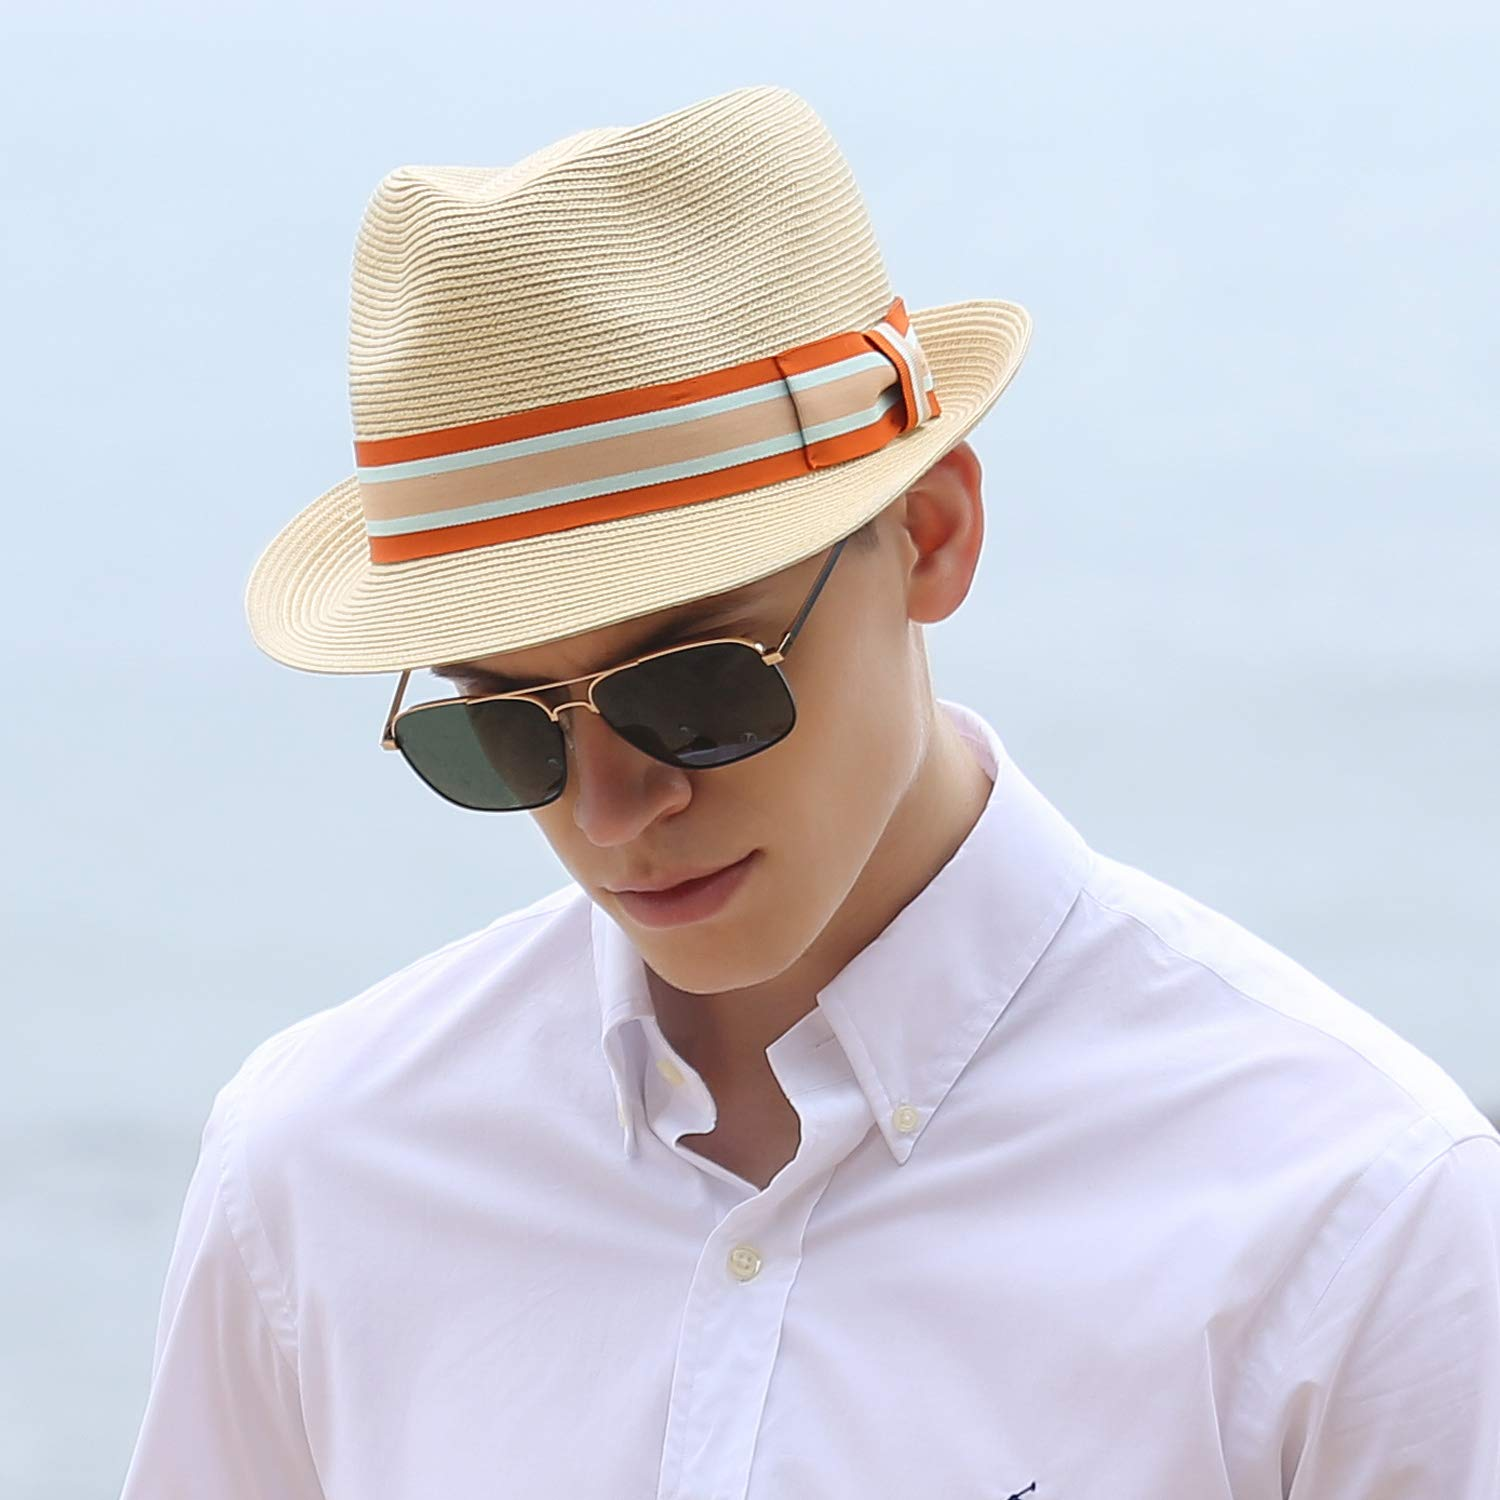 1950s Mens Hats | 50s Vintage Men's Hats Janetshats Straw Fedora Unisex Summer Sun Hats Panama Short Brim Hat Men Women $33.99 AT vintagedancer.com